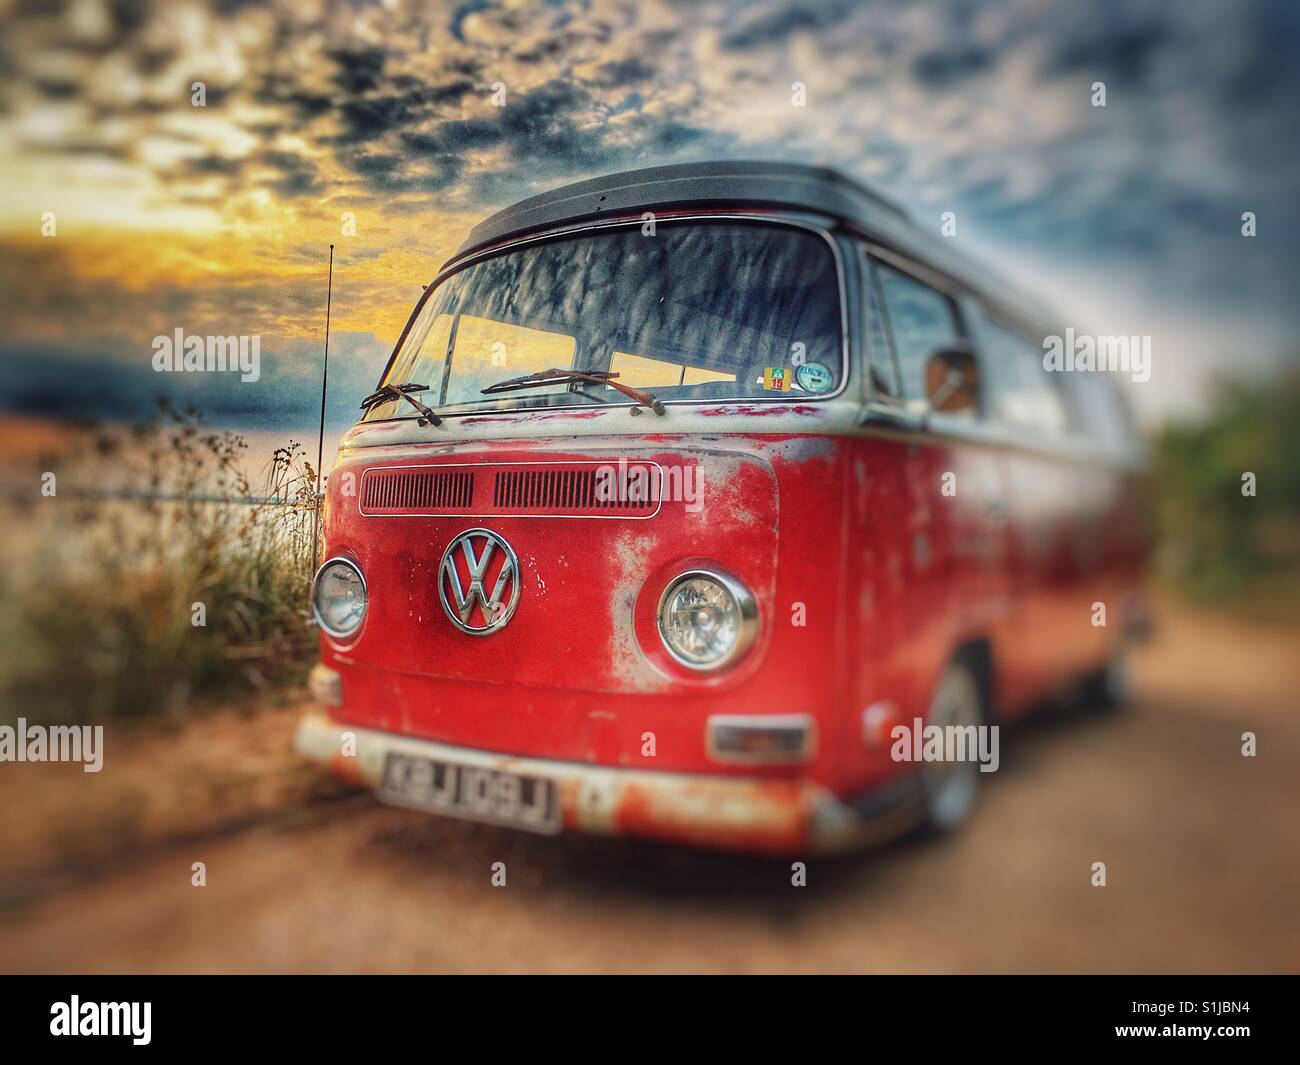 Ongekend Vw Camper Bus Stock Photos & Vw Camper Bus Stock Images - Alamy GM-57